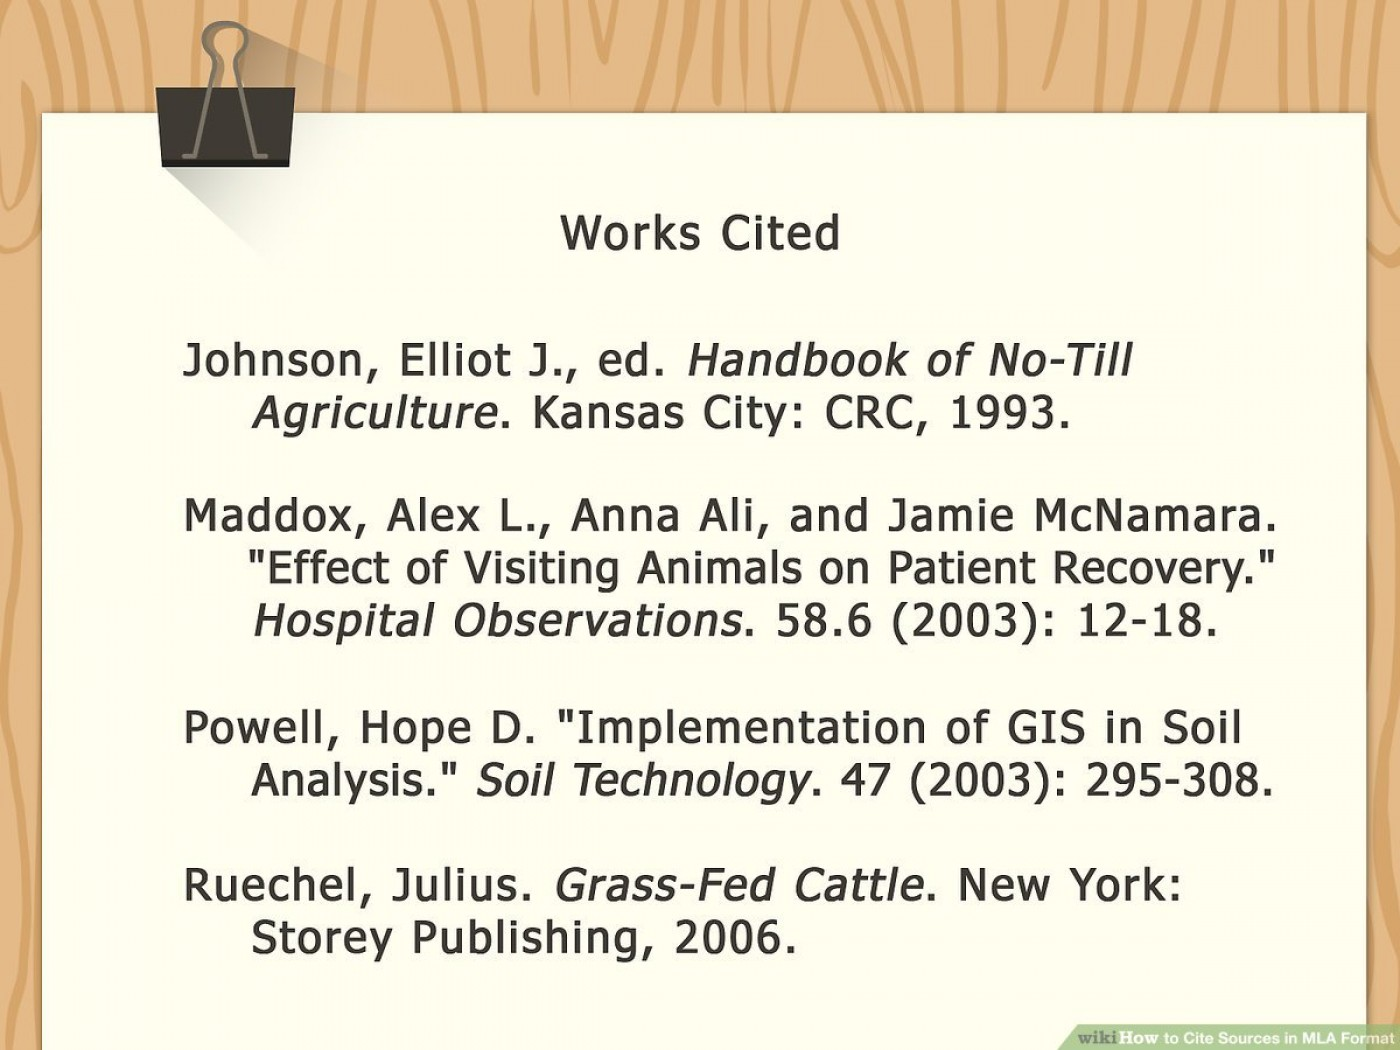 017 Mla Citation Example Bibmemlaimage Research ~ Museumlegs